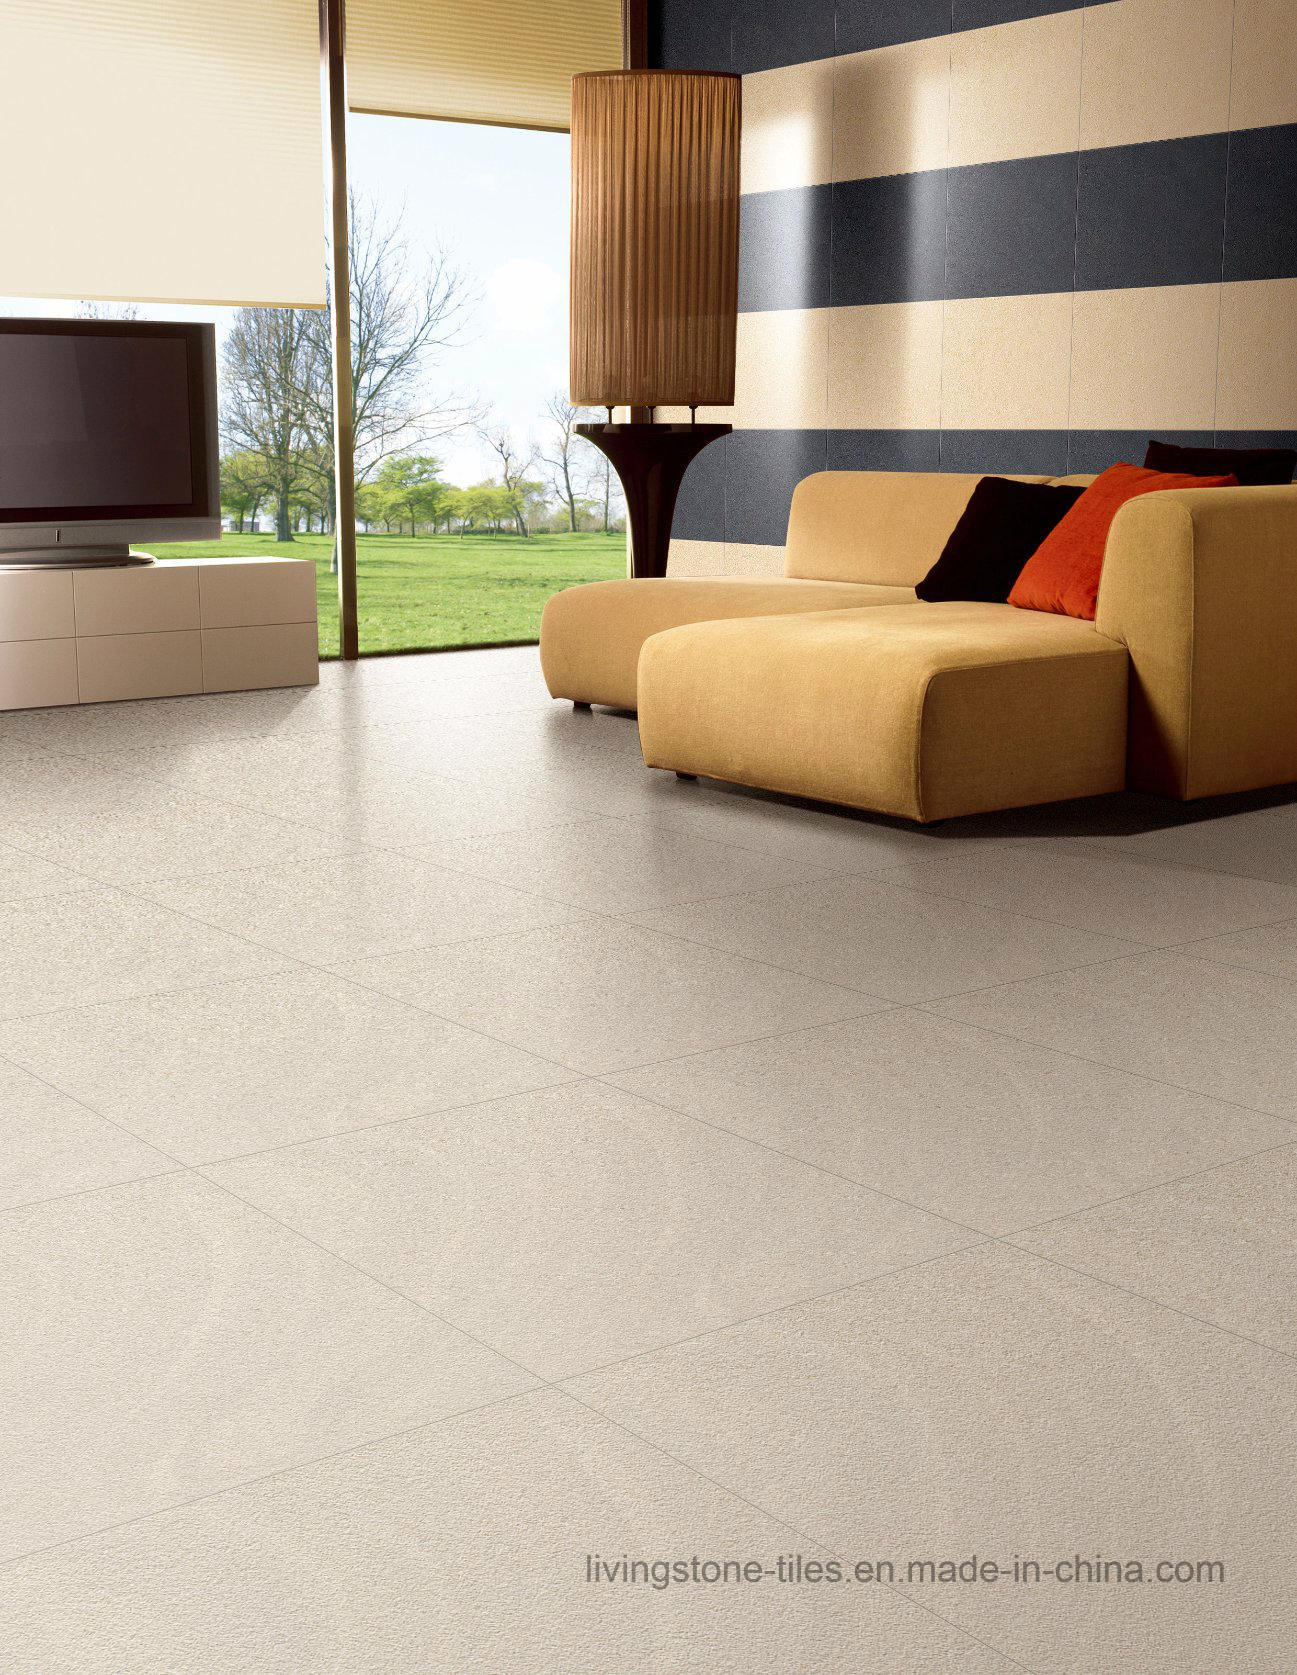 uk know floors thebakedtilecompany decorate flooring tips things floor porcelain tiles to